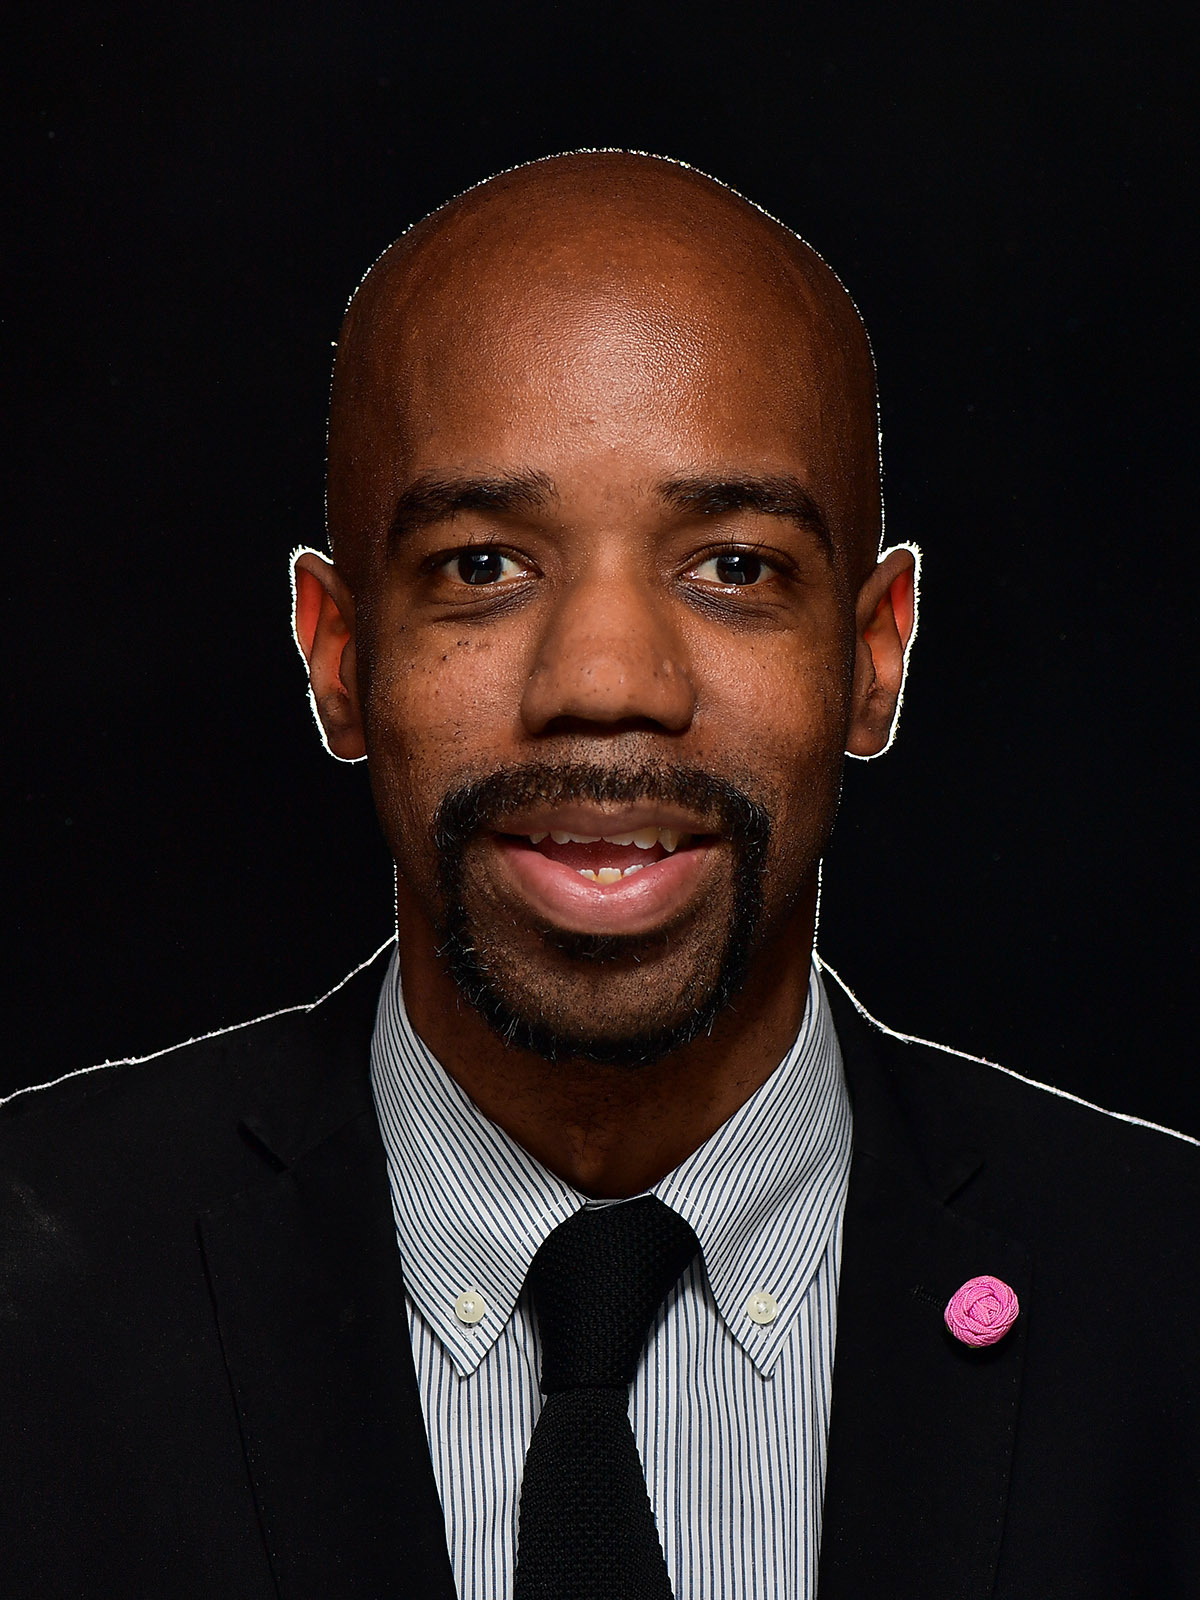 Lamar R. Hylton, Ph.D., is the first Black person to hold the title of vice president for student affairs at Kent State University.